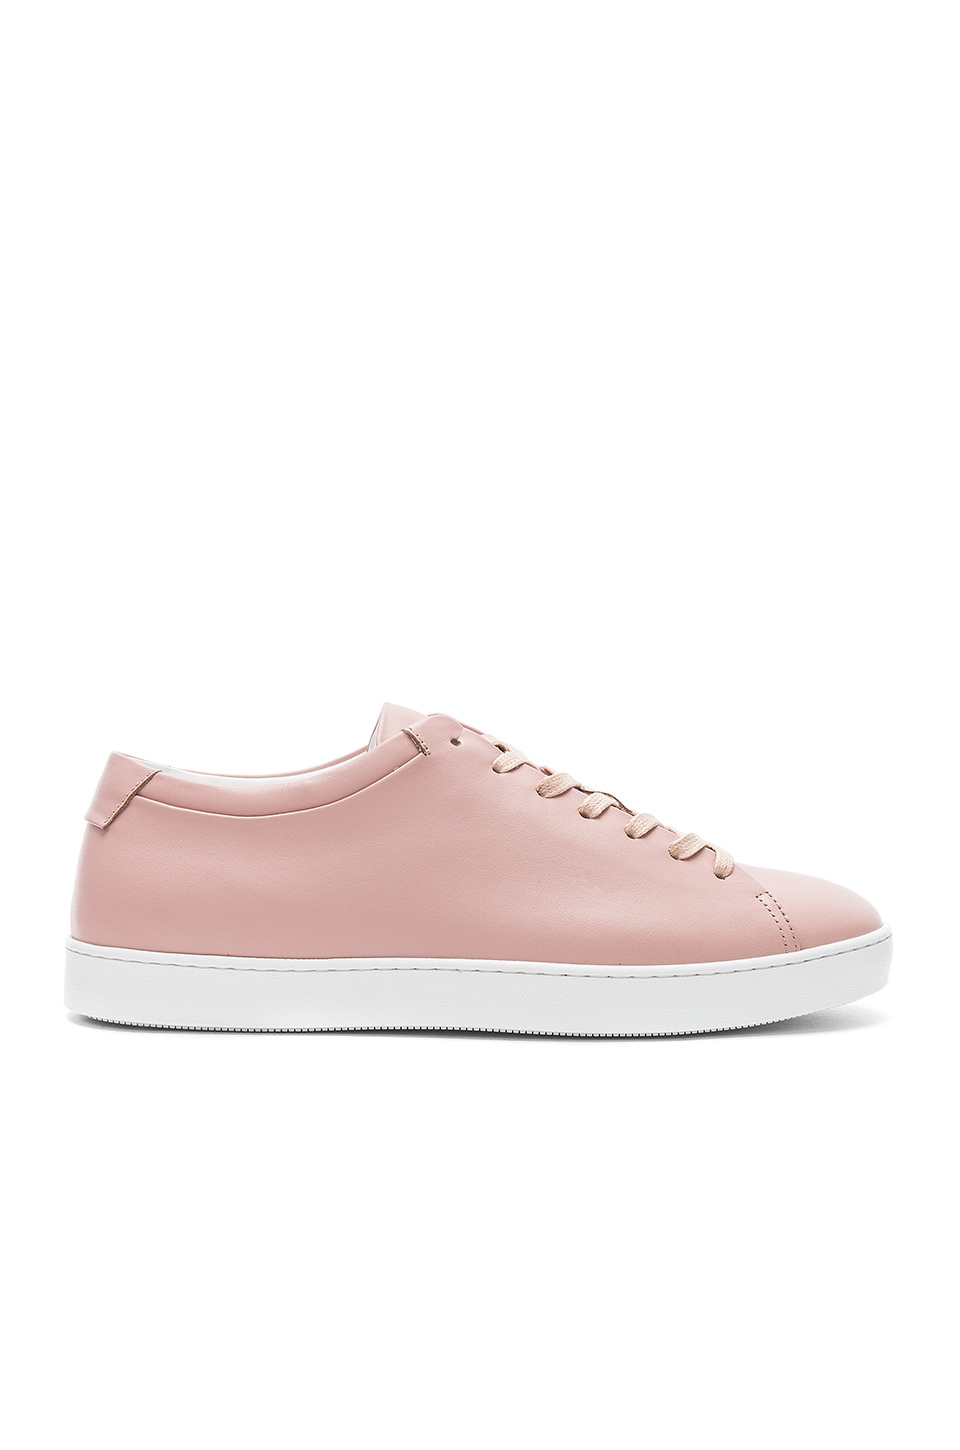 Low Top by JOHN ELLIOTT